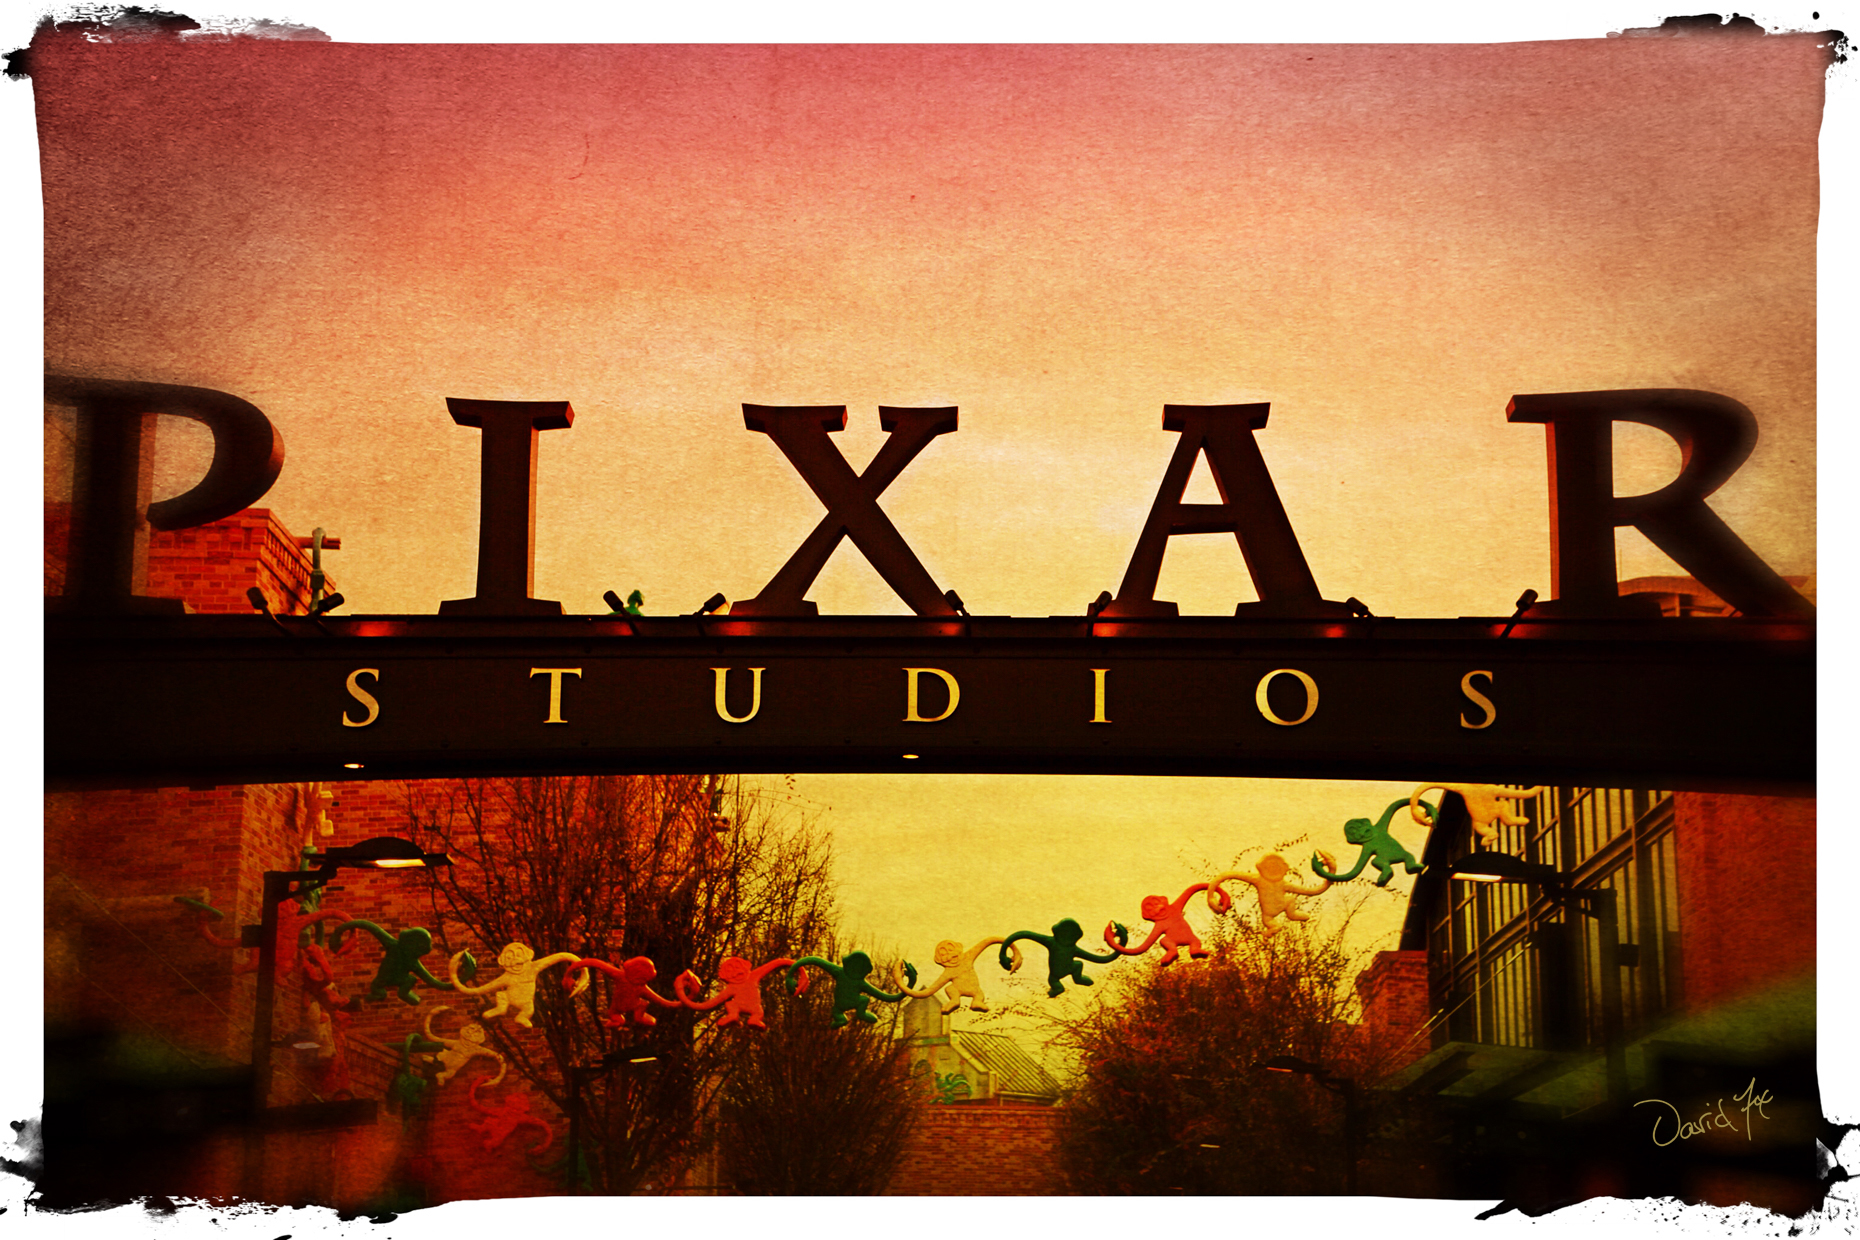 Disney Pixar Studios Digital Art by David Fox Photographer